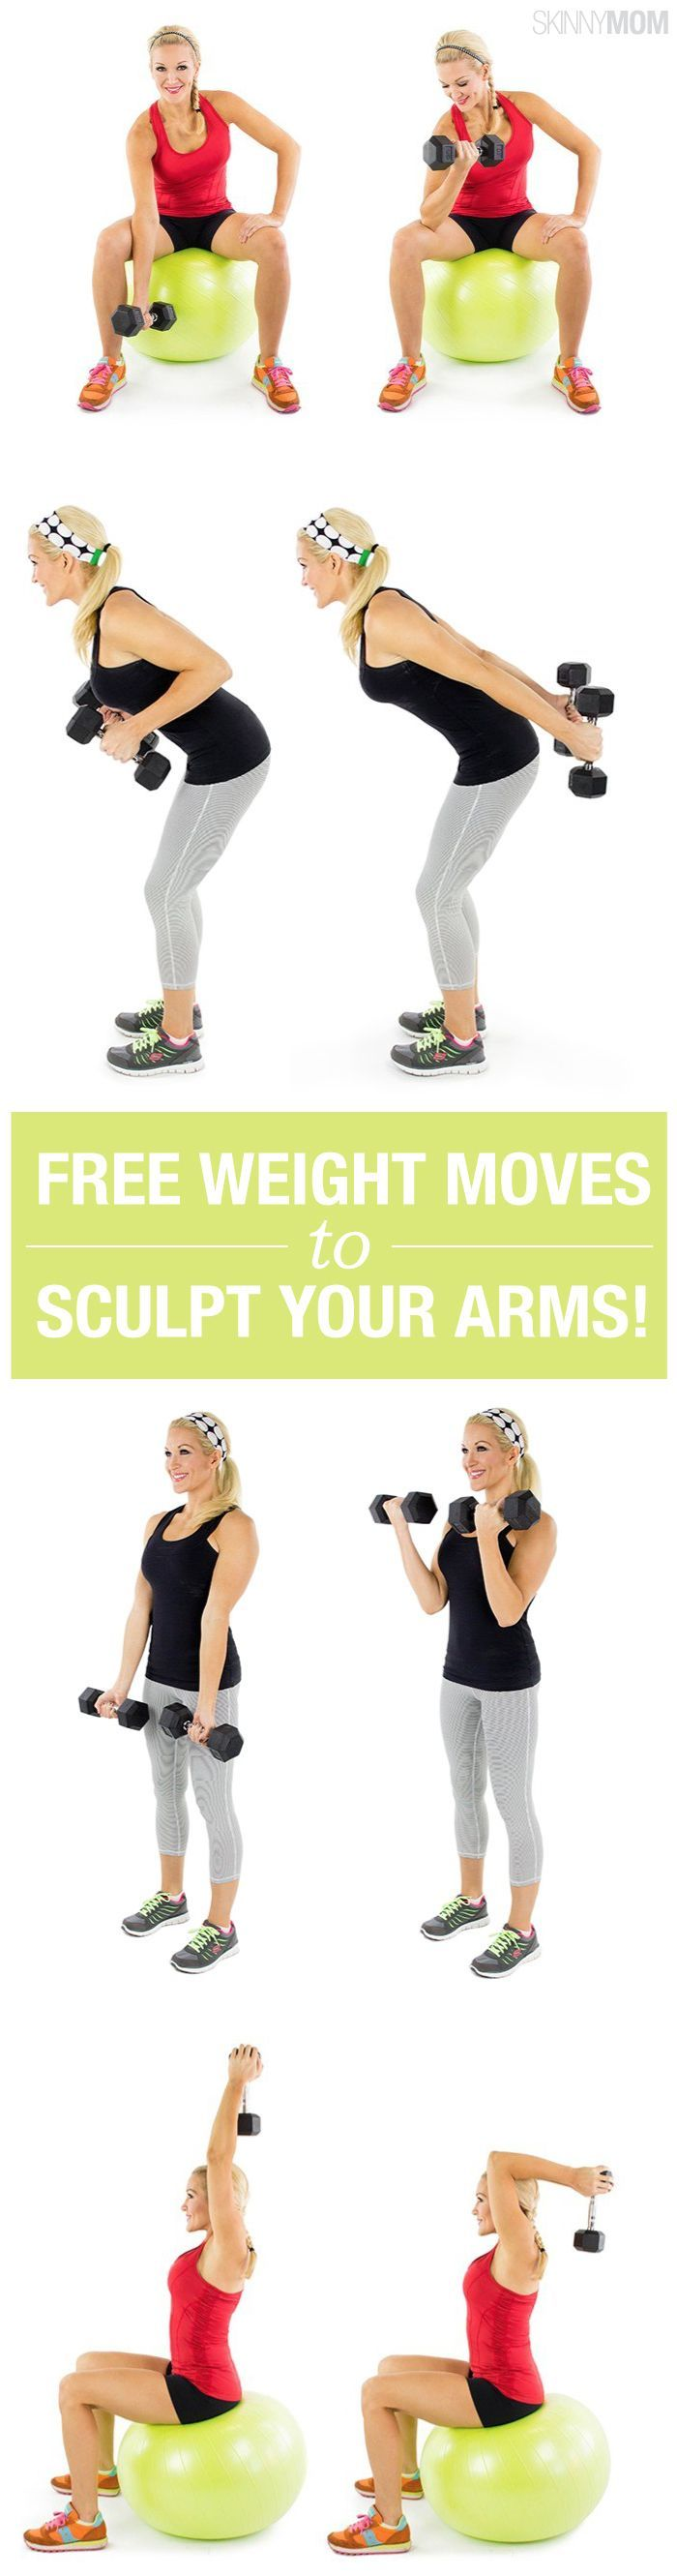 Sculpt your arms with 17 free weight moves. Grab those dumbbells!